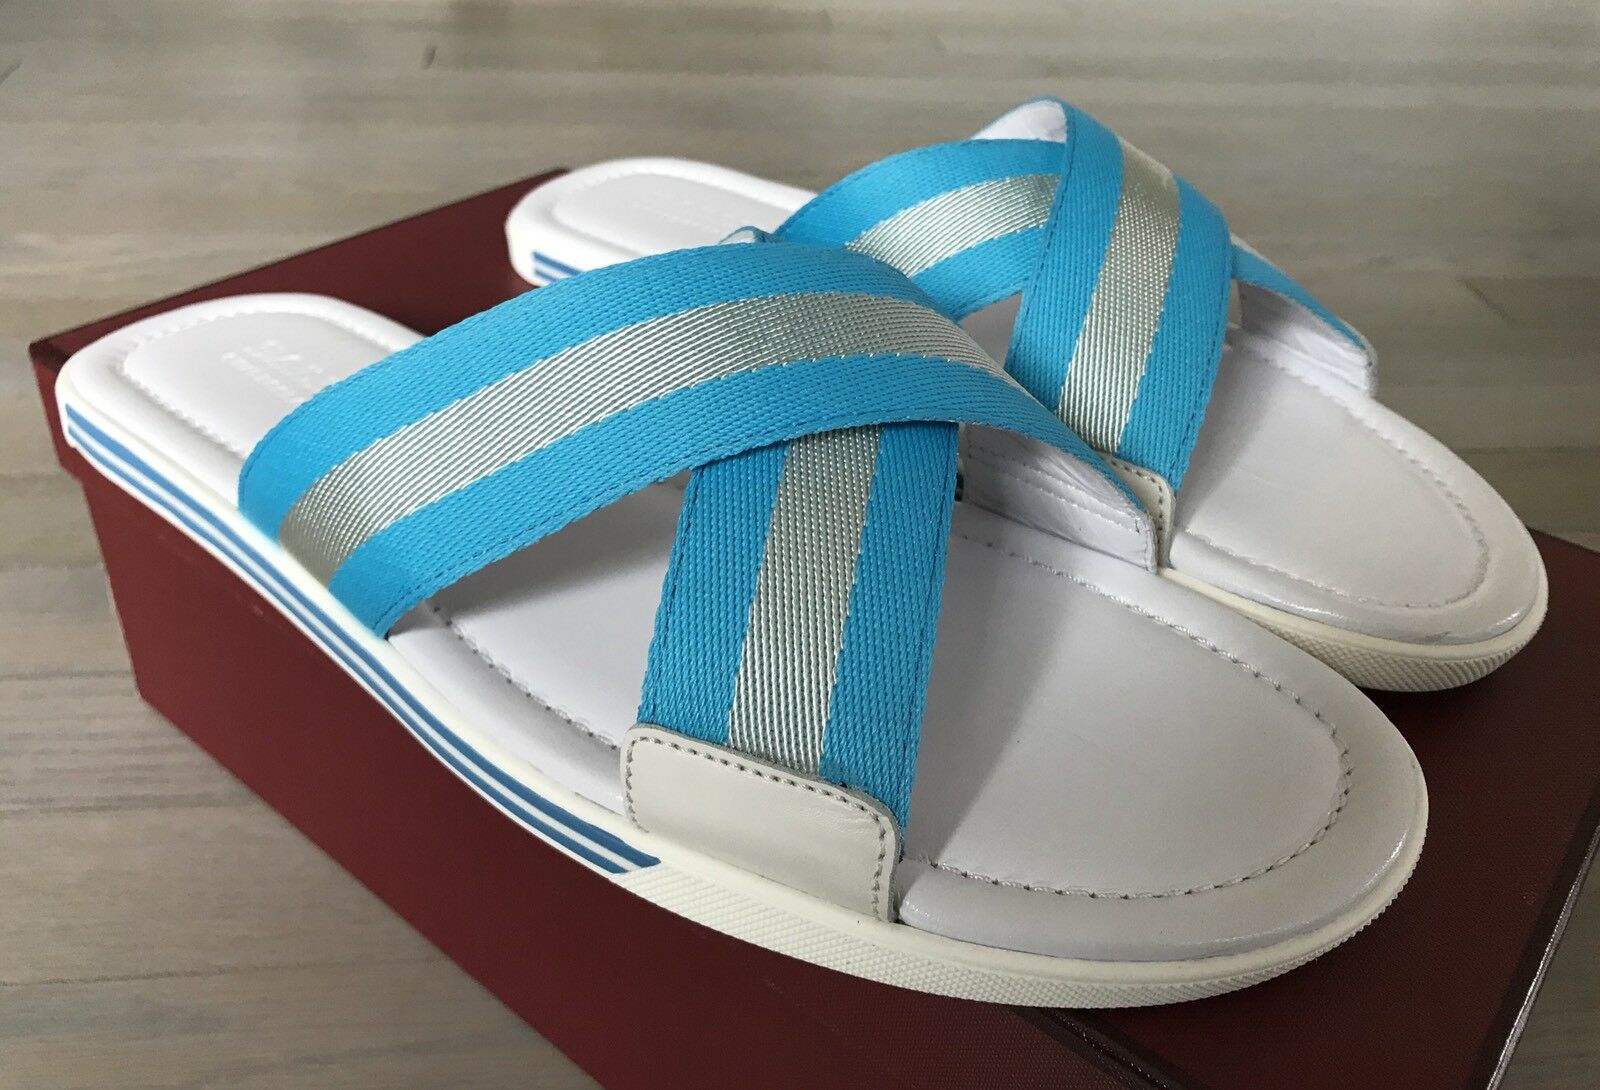 500  Bally Bonks White and bluee Leather Sandals size US 10 Made in